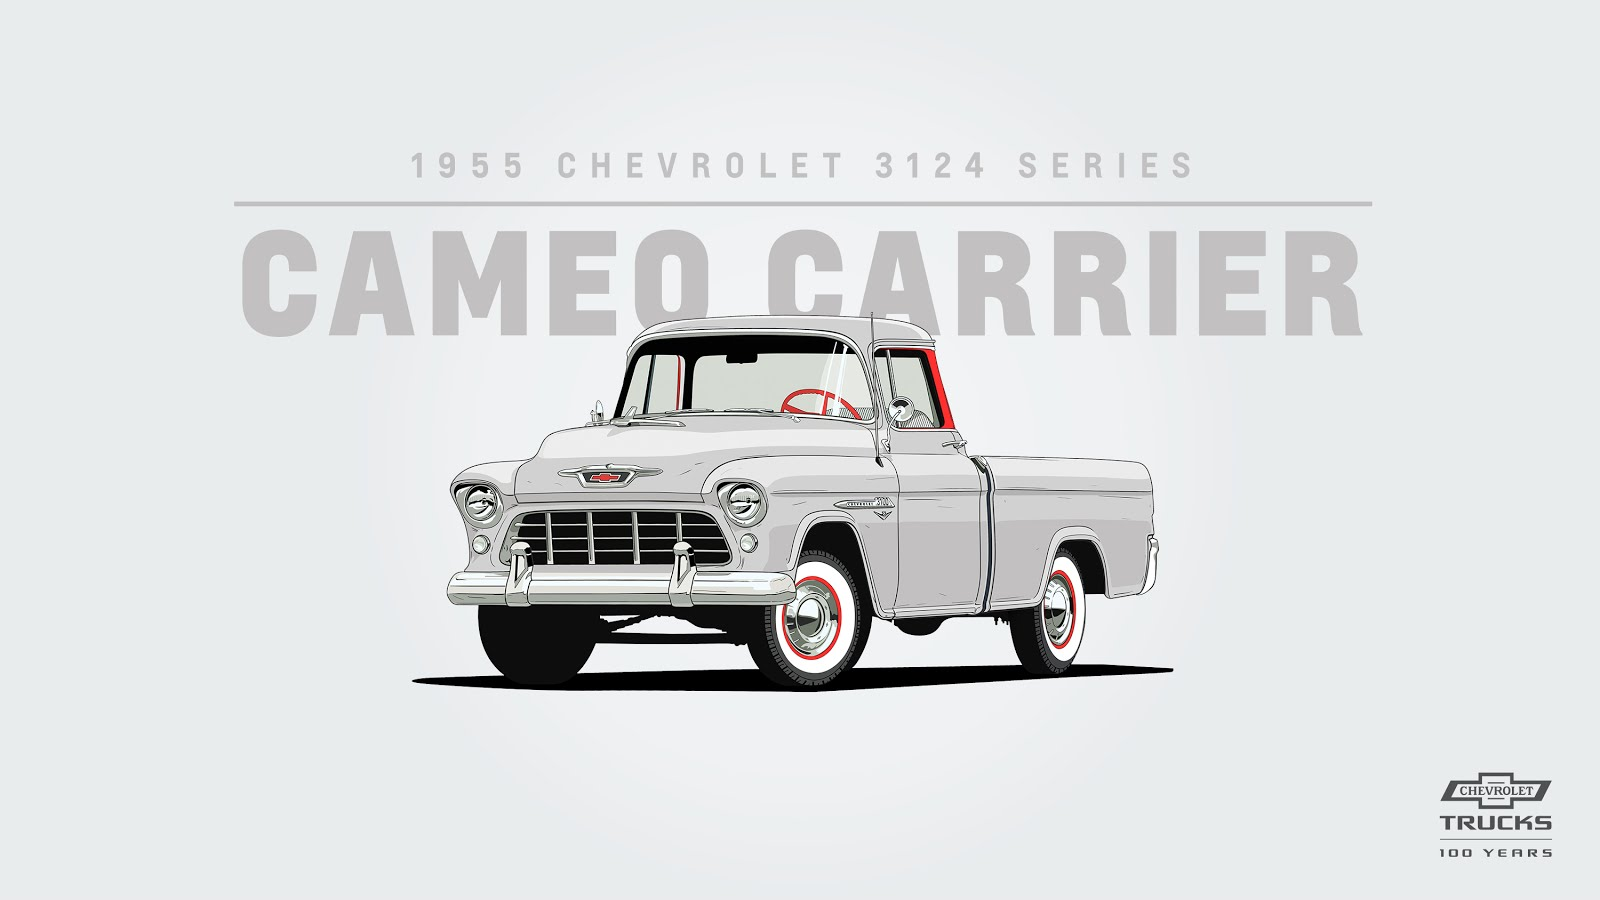 small resolution of producing 123 horsepower with its 3 85l i 6 engine the 1955 chevrolet 3124 series was the first fleetside flat sided truck in the industry